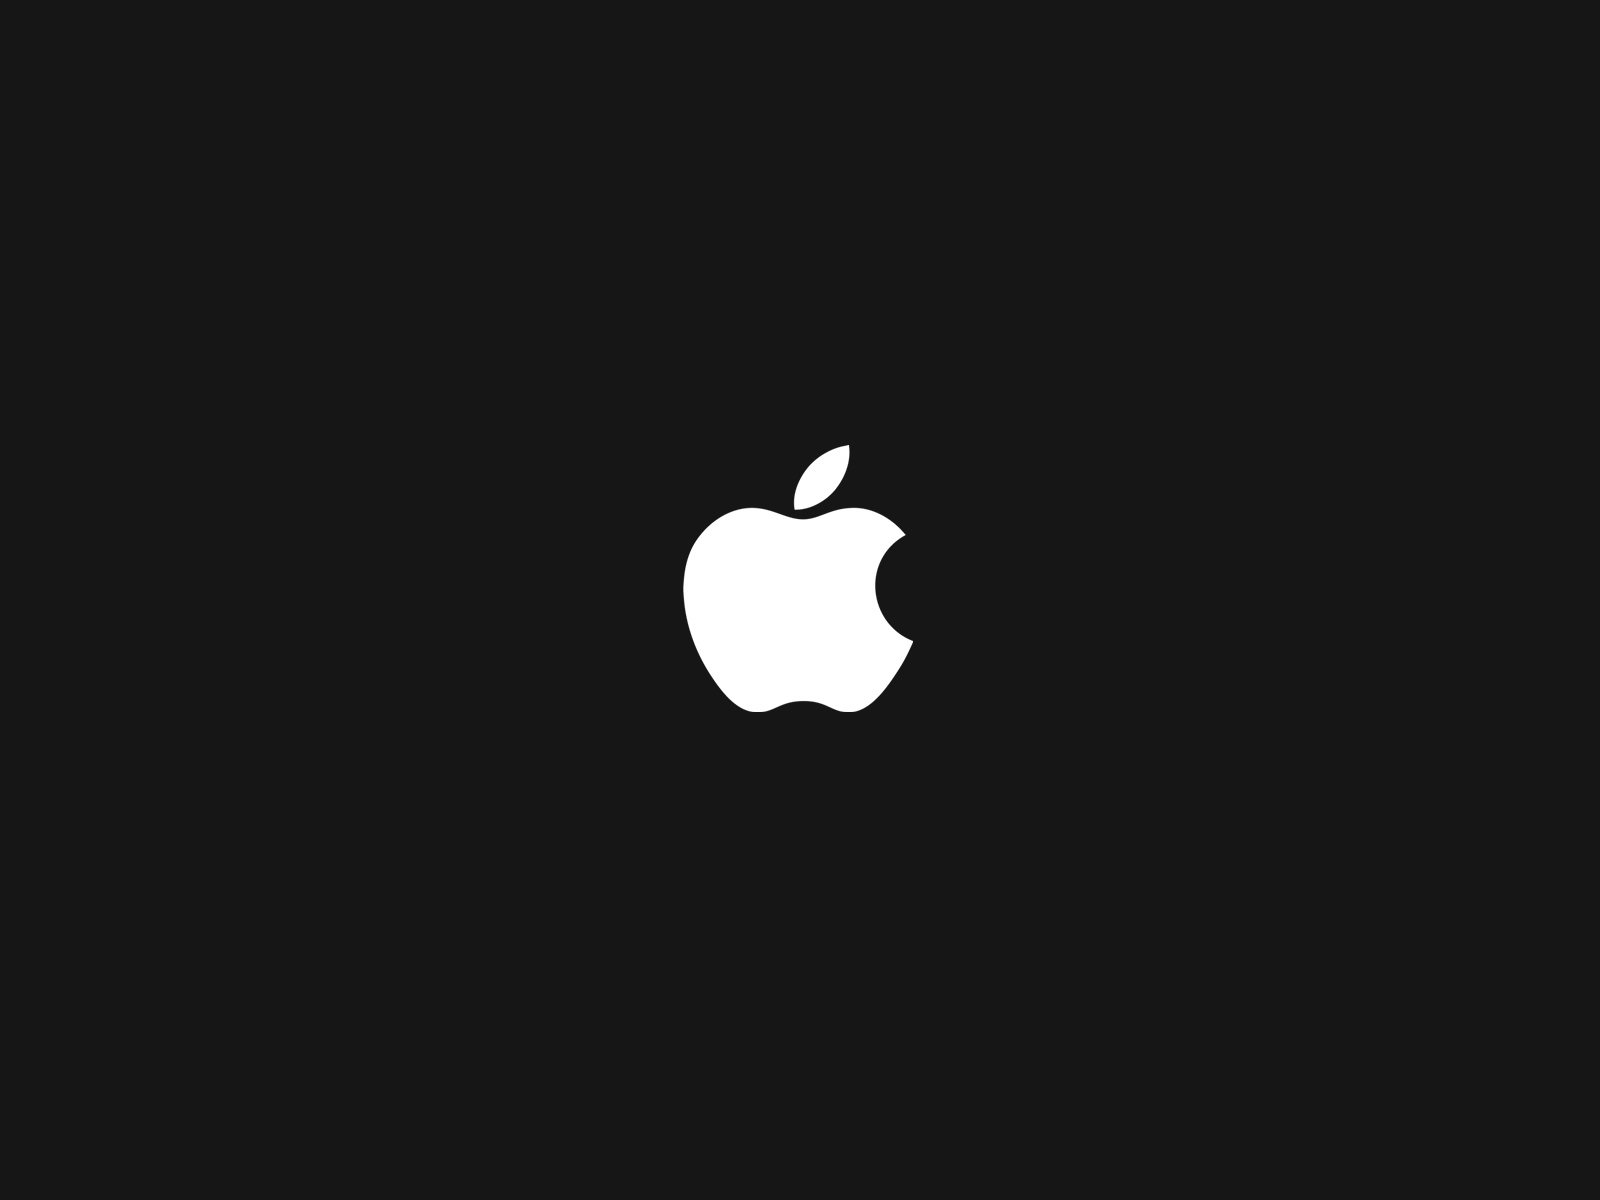 Apple Logo Wallpapers HD black background